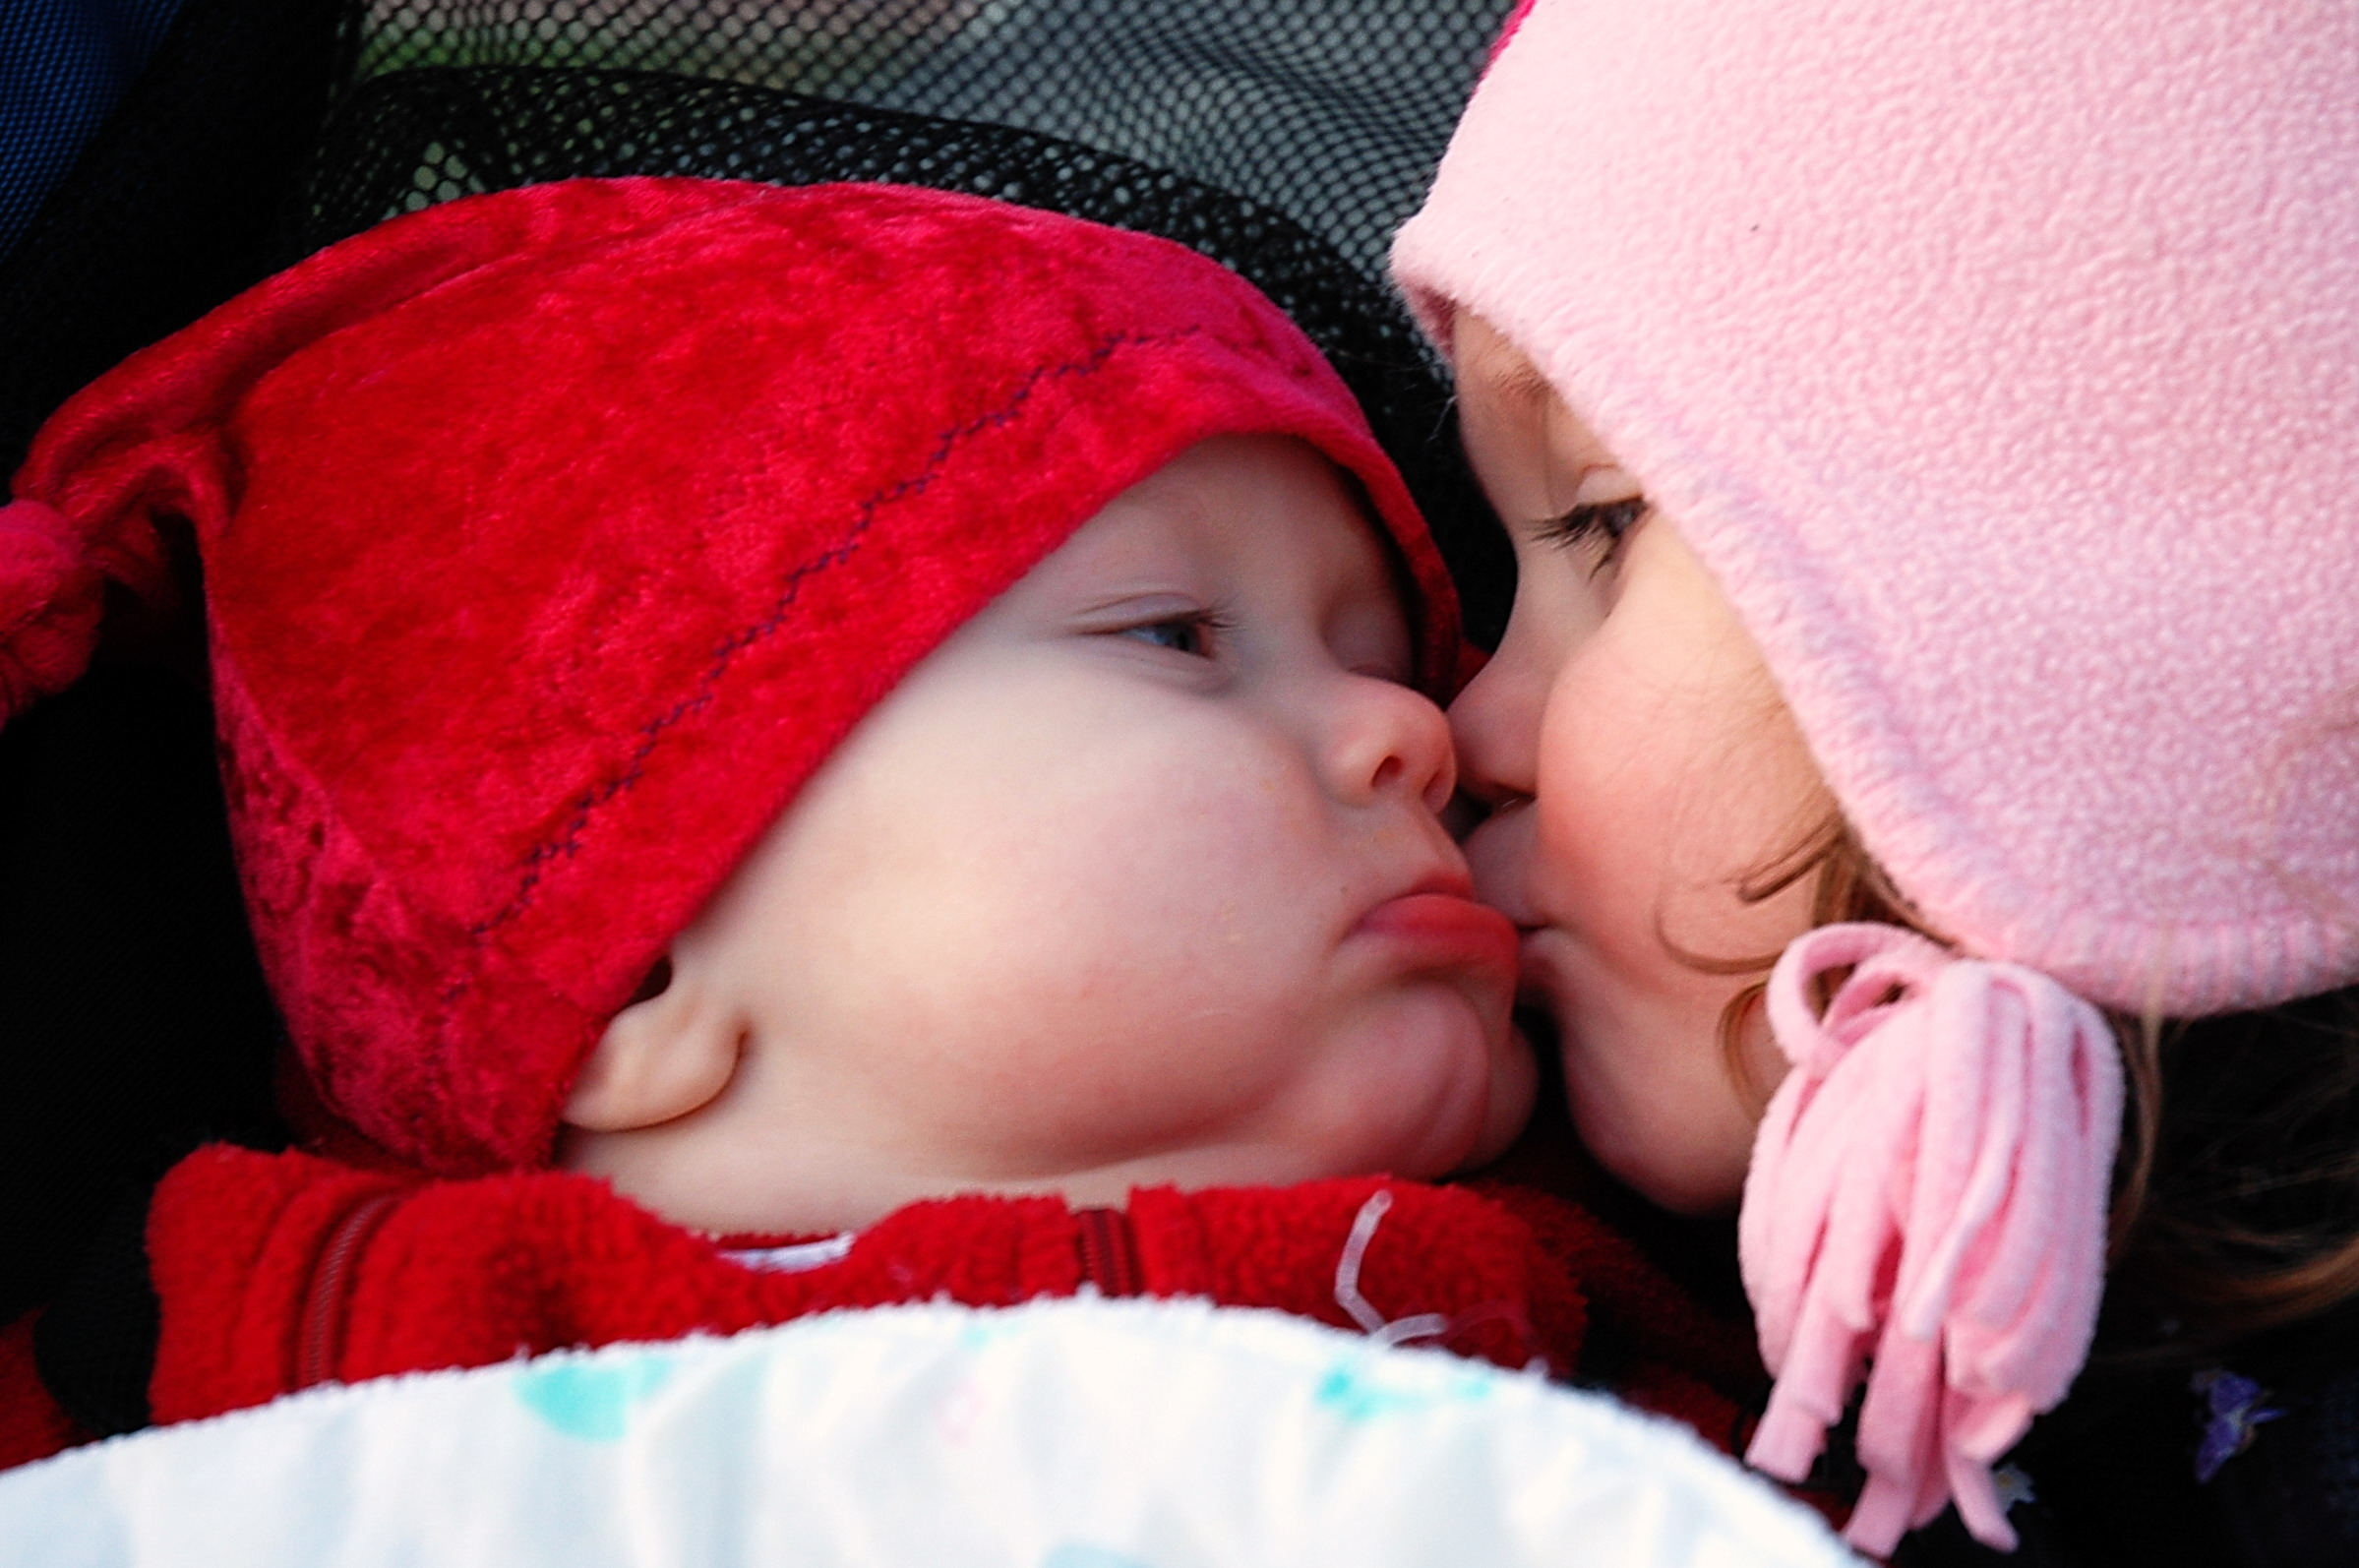 Baby and Child Kiss